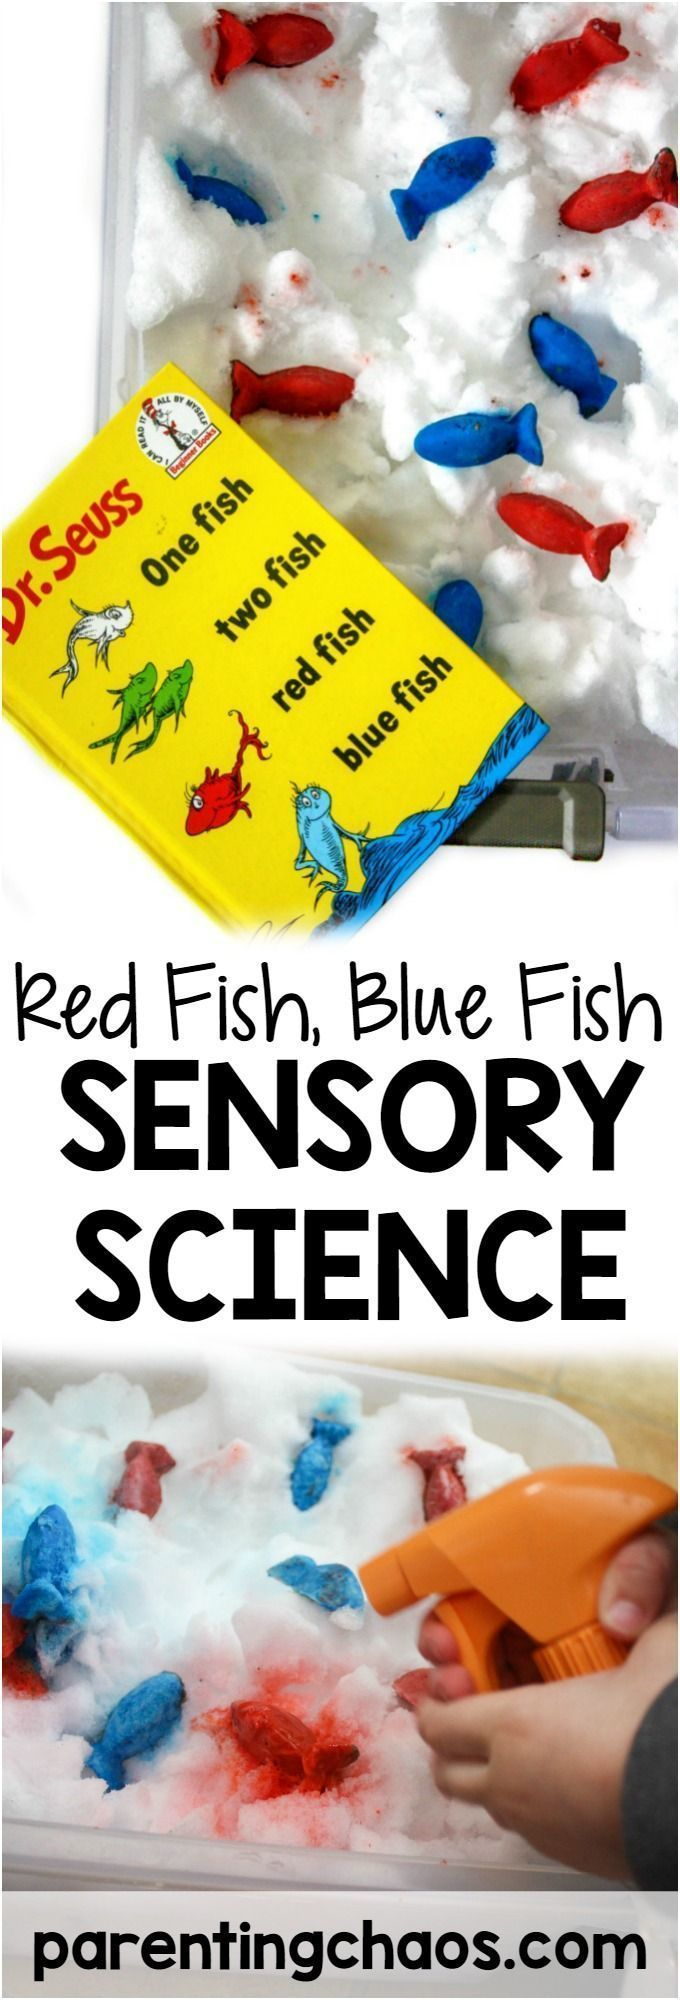 Kids will love this Red Fish, Blue Fish Sensory Science Bin inspired by Dr. Seuss's book One Fish Two Fish Red Fish Blue Fish!